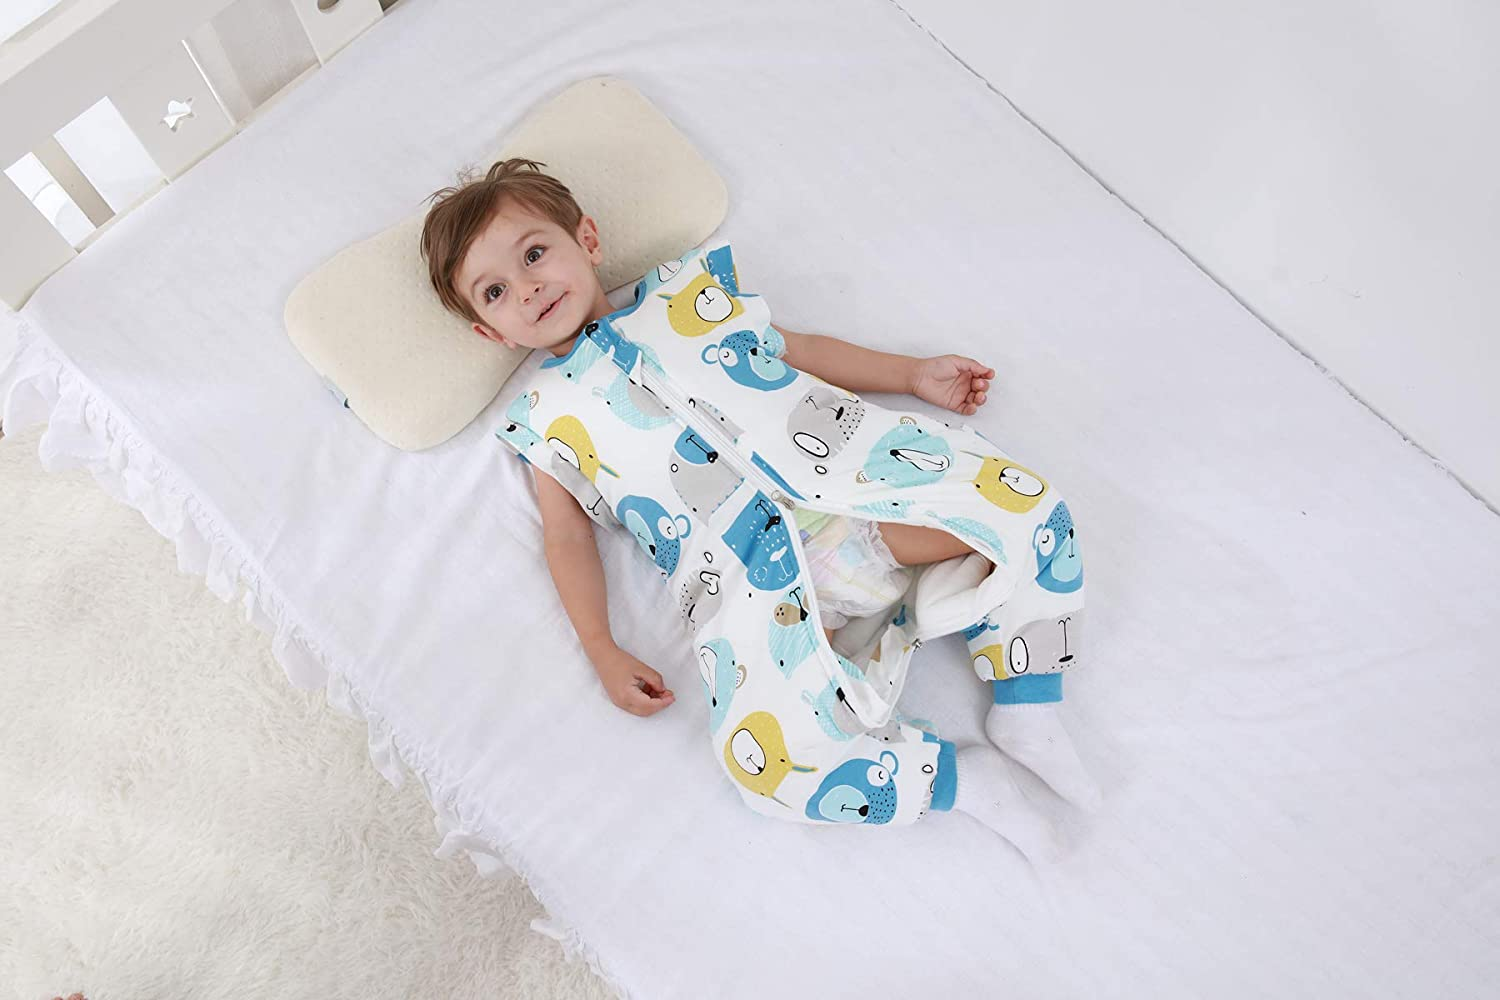 MIKAFEN Baby Sleeping Bag with Legs Warm Lined Winter Long Sleeve Winter Sleeping Bag with Foot 3.5 Tog L//Body Size 31.4-35.4 in, Blue